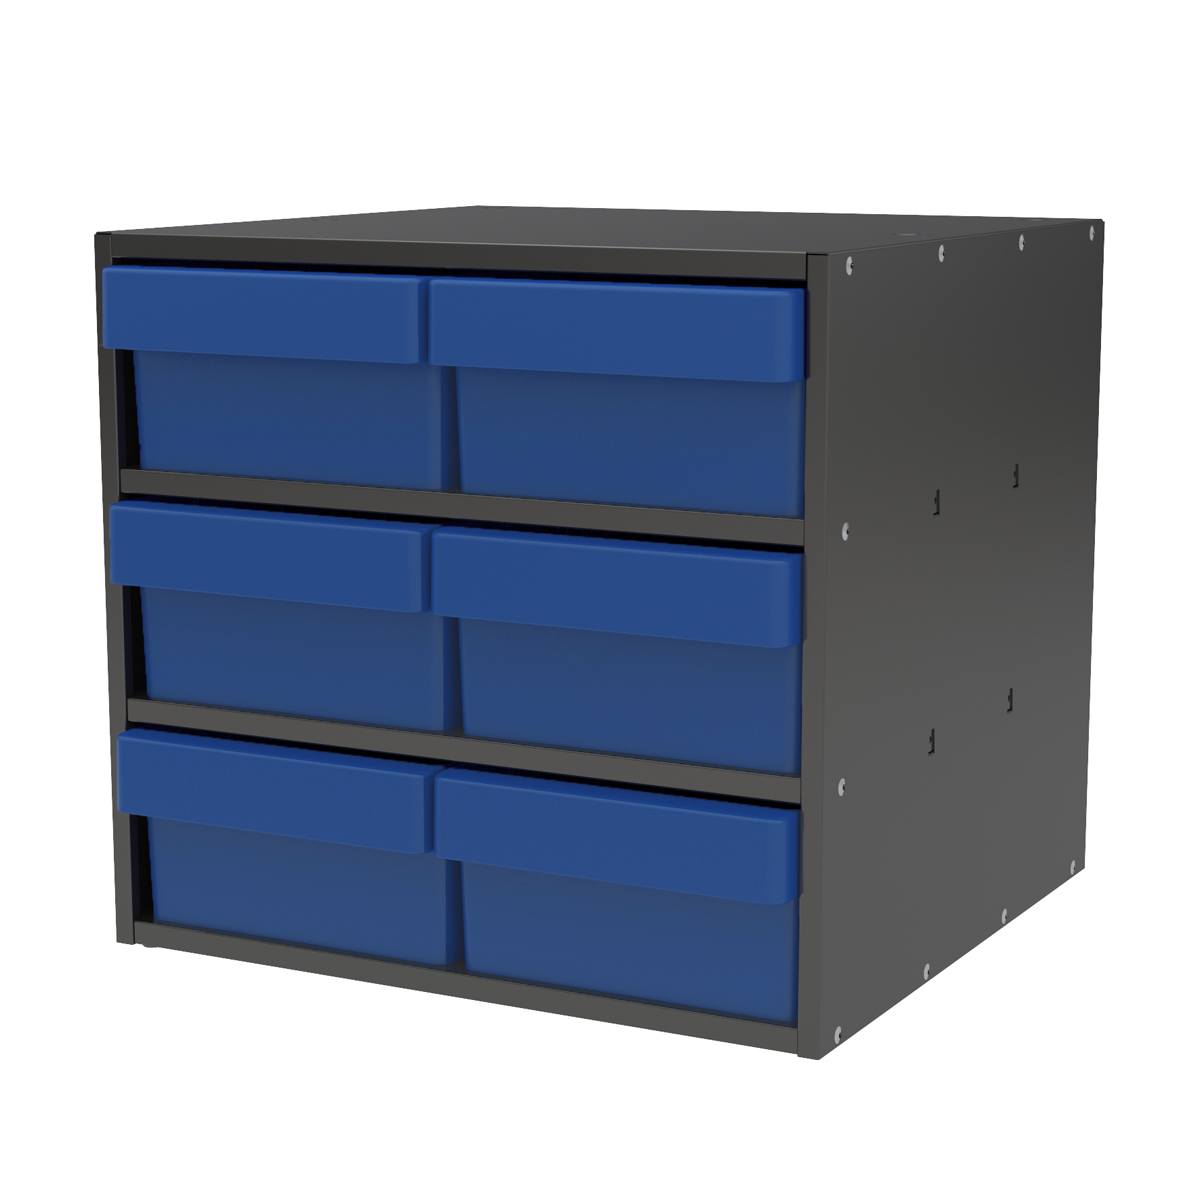 Item DISCONTINUED by Manufacturer.  Modular Cabinet, 18x17x16, 6 Drawers, Gray/Blue (AD1817C88BLU).  This item sold in carton quantities of 1.